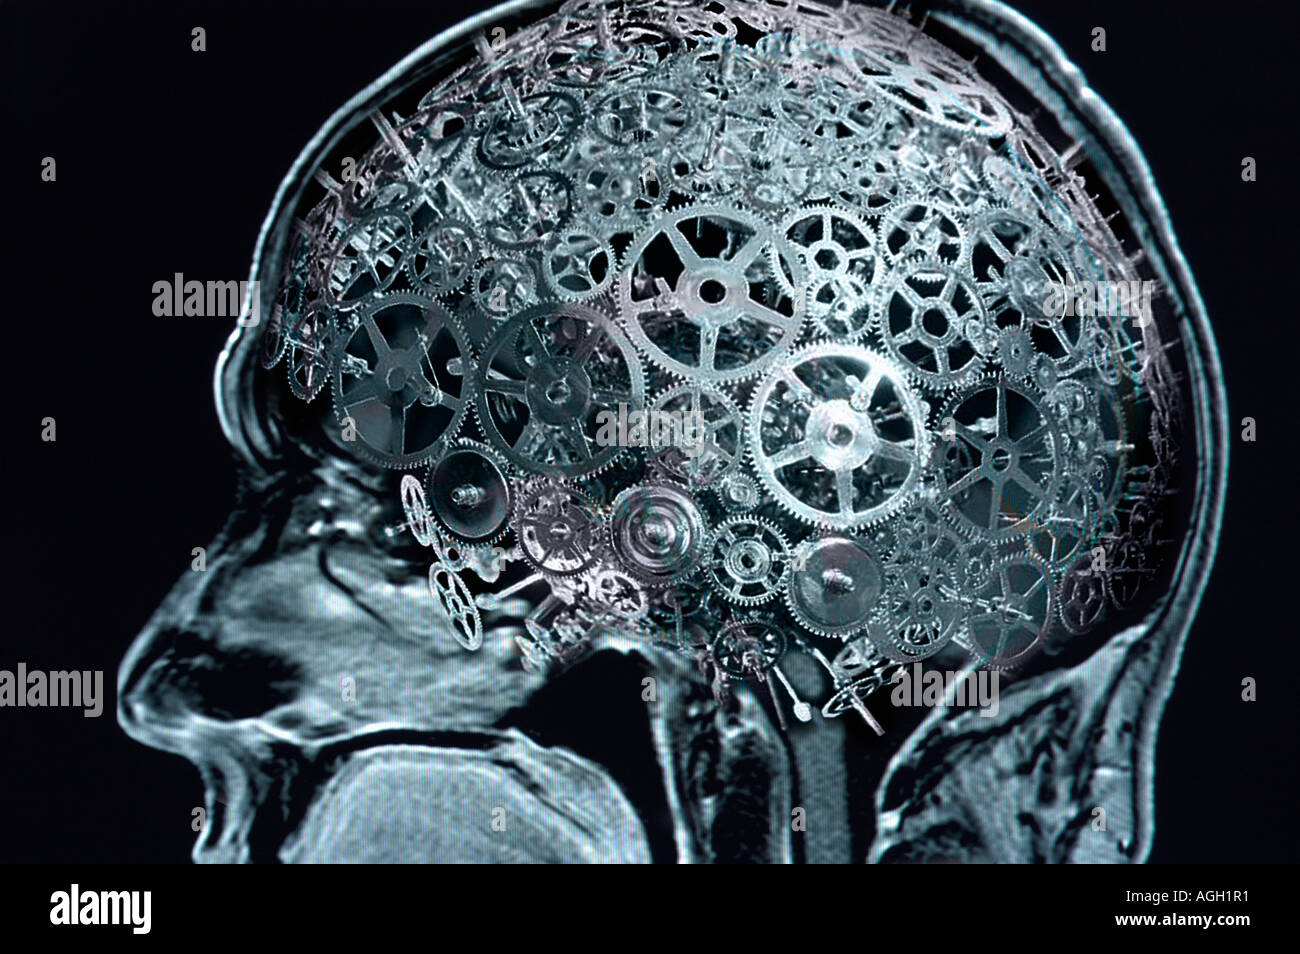 the complexity of human brain The superior size and complexity of the human brain compared to other  mammals may actually originate from fewer initial starting materials,.